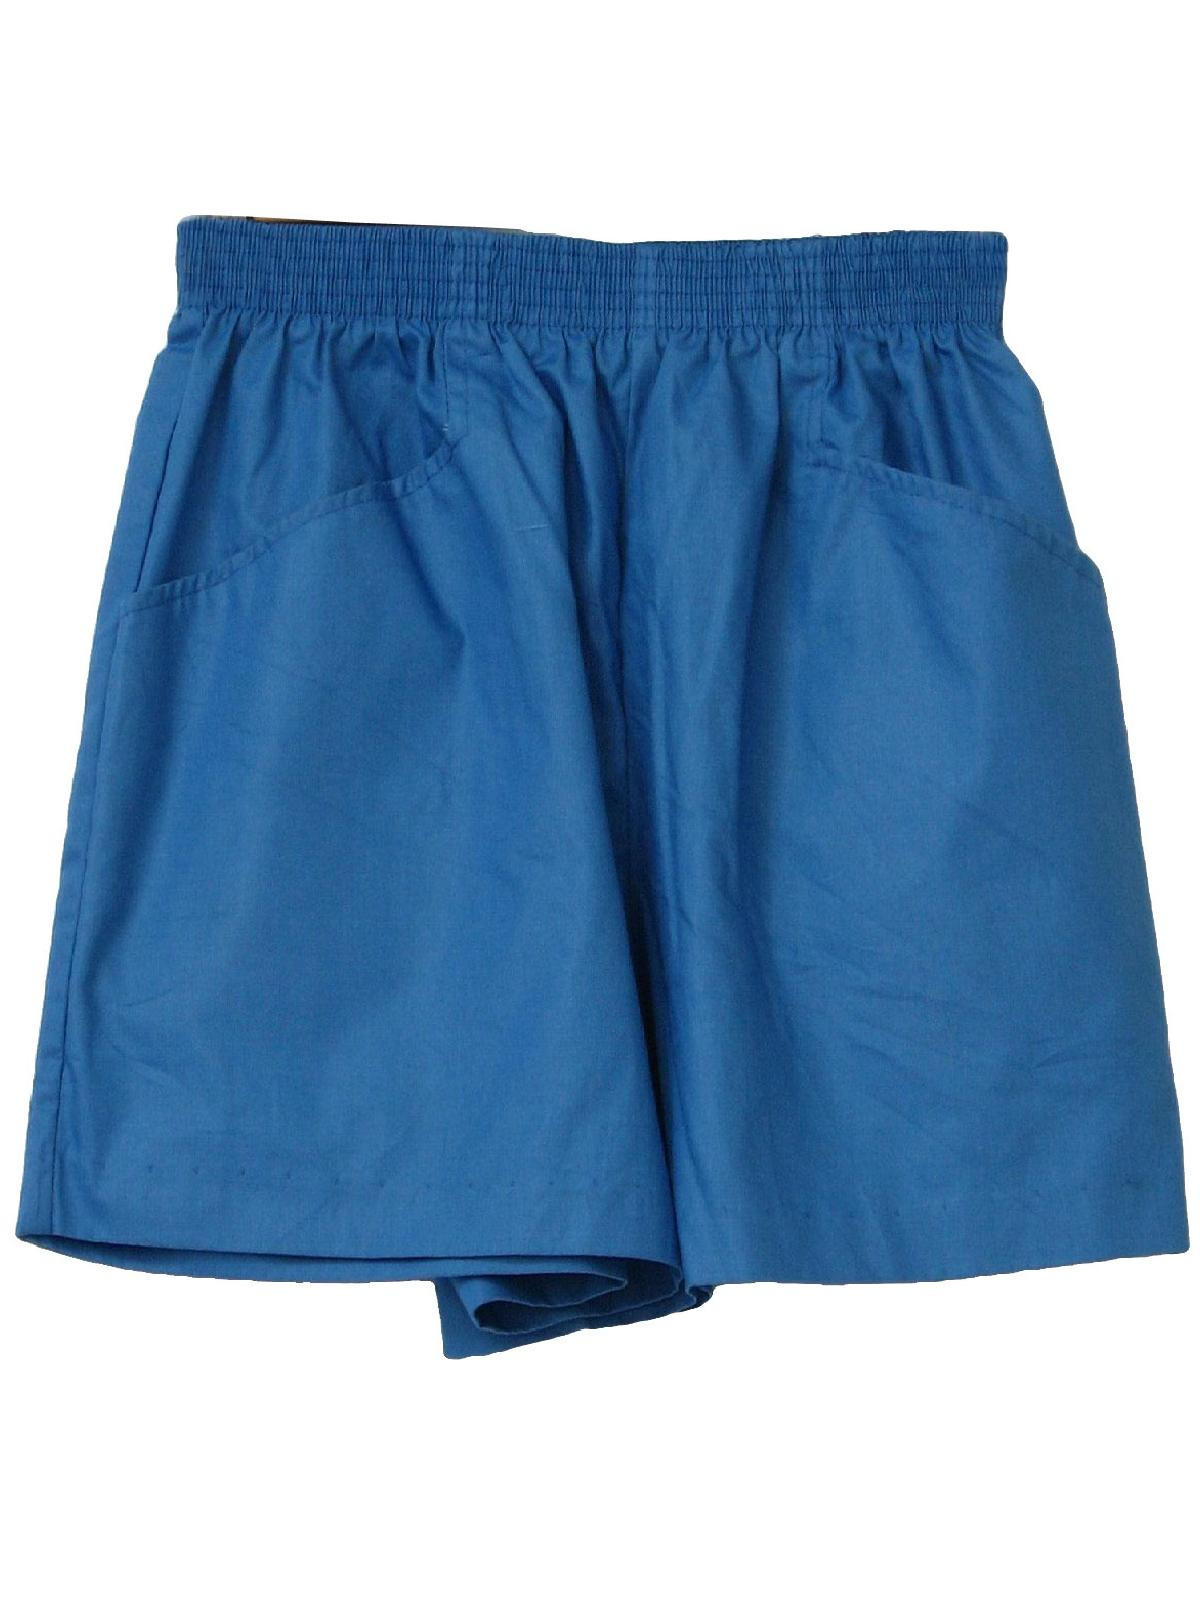 Ladies Cotton Shorts Elastic Waist - The Else